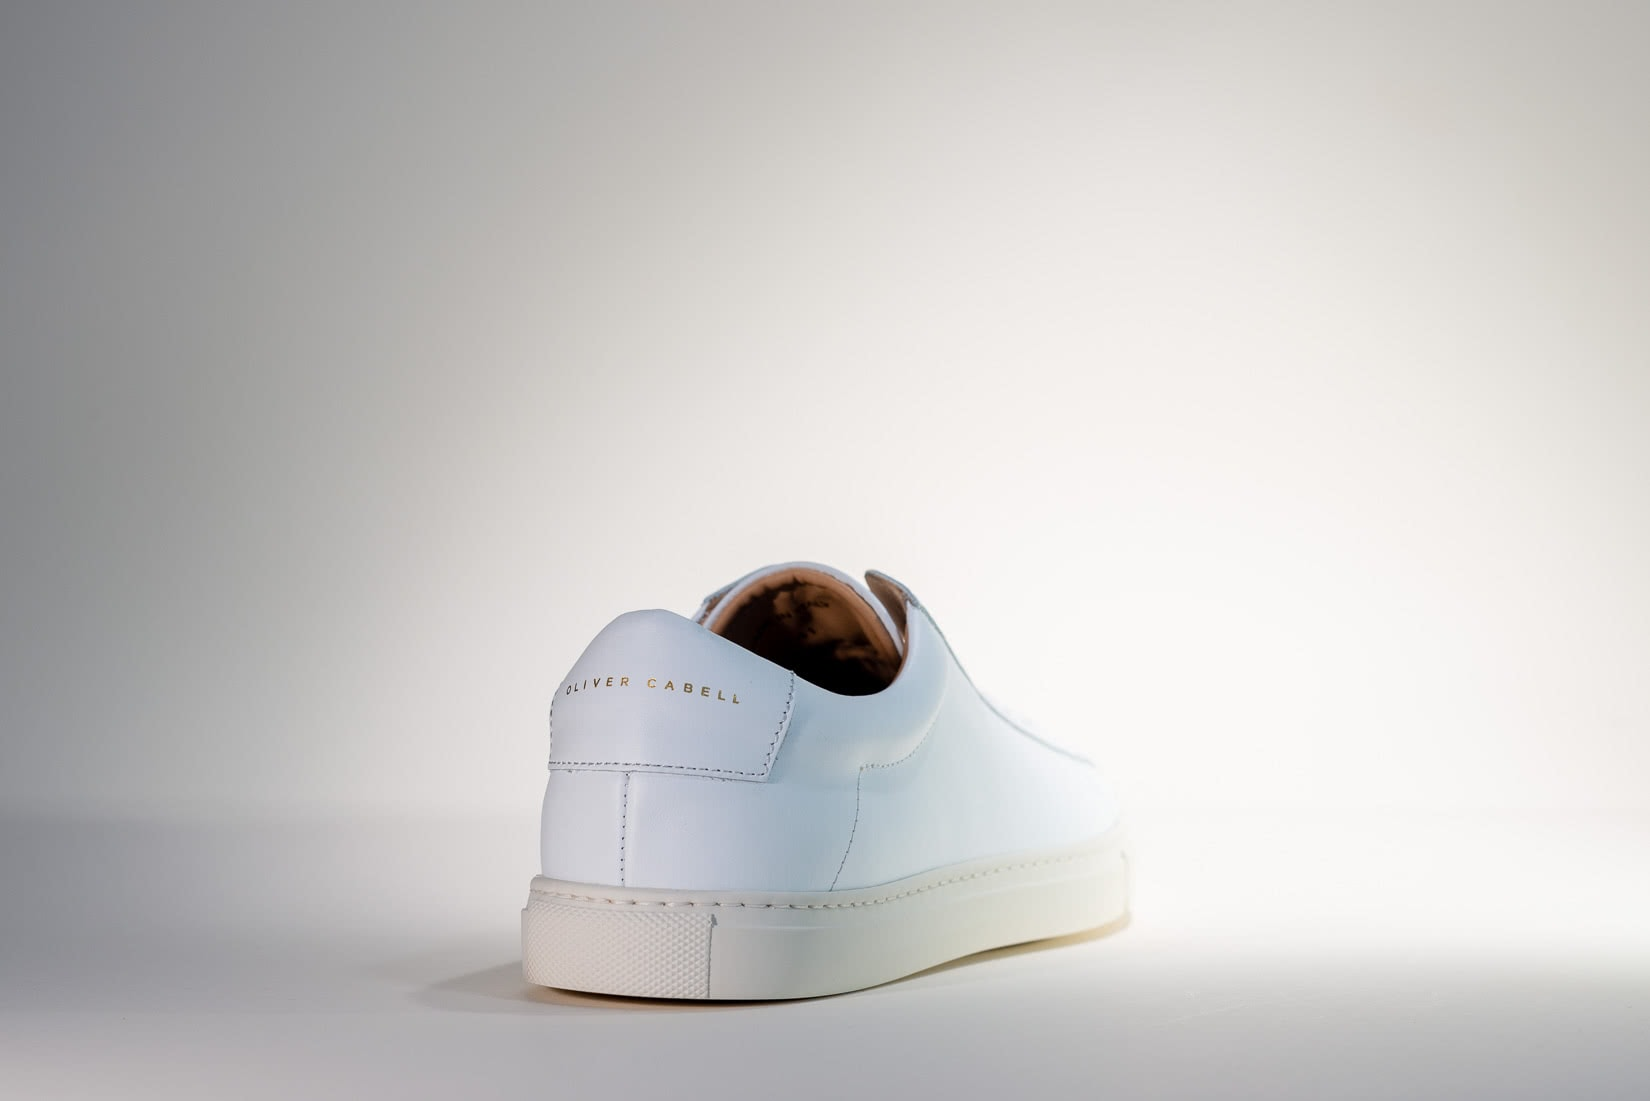 oliver cabell review low 1 sneakers luxury - Luxe Digital